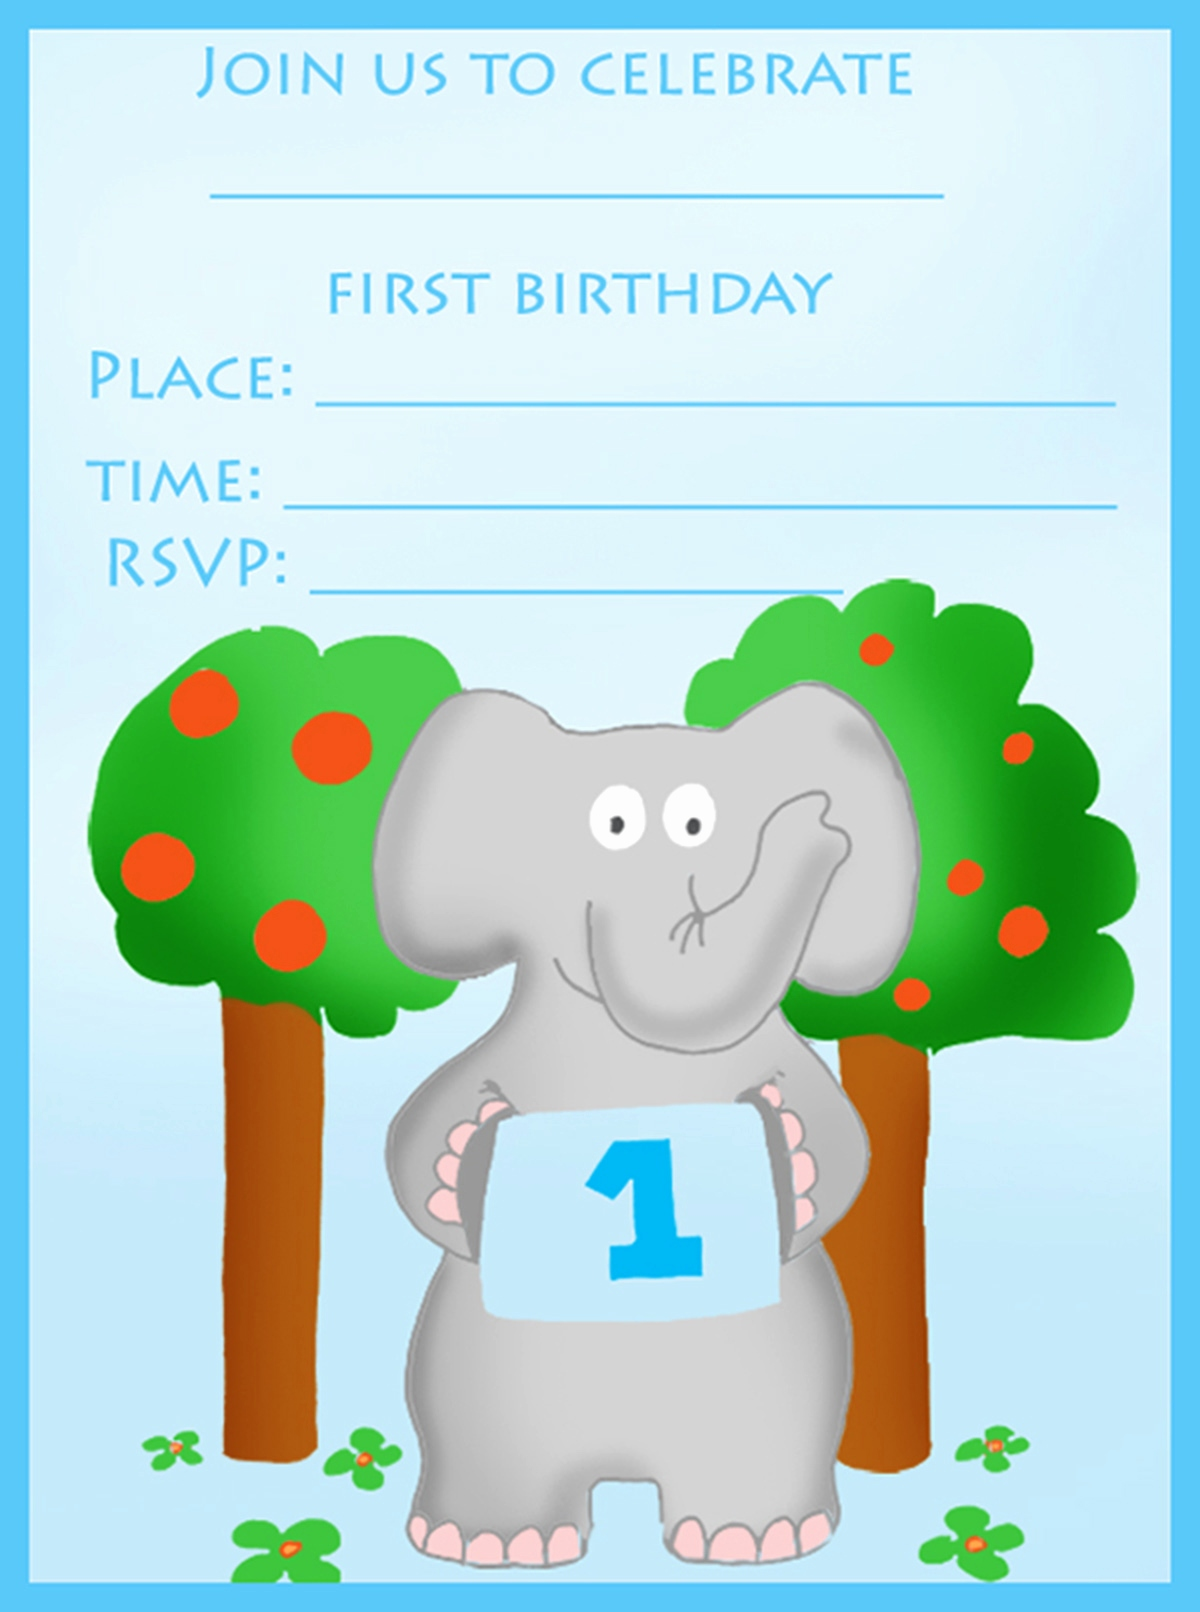 printable 1st birthday cards ; elephant-birthday-cards-beautiful-find-your-printable-1st-birthday-invitation-here-of-elephant-birthday-cards